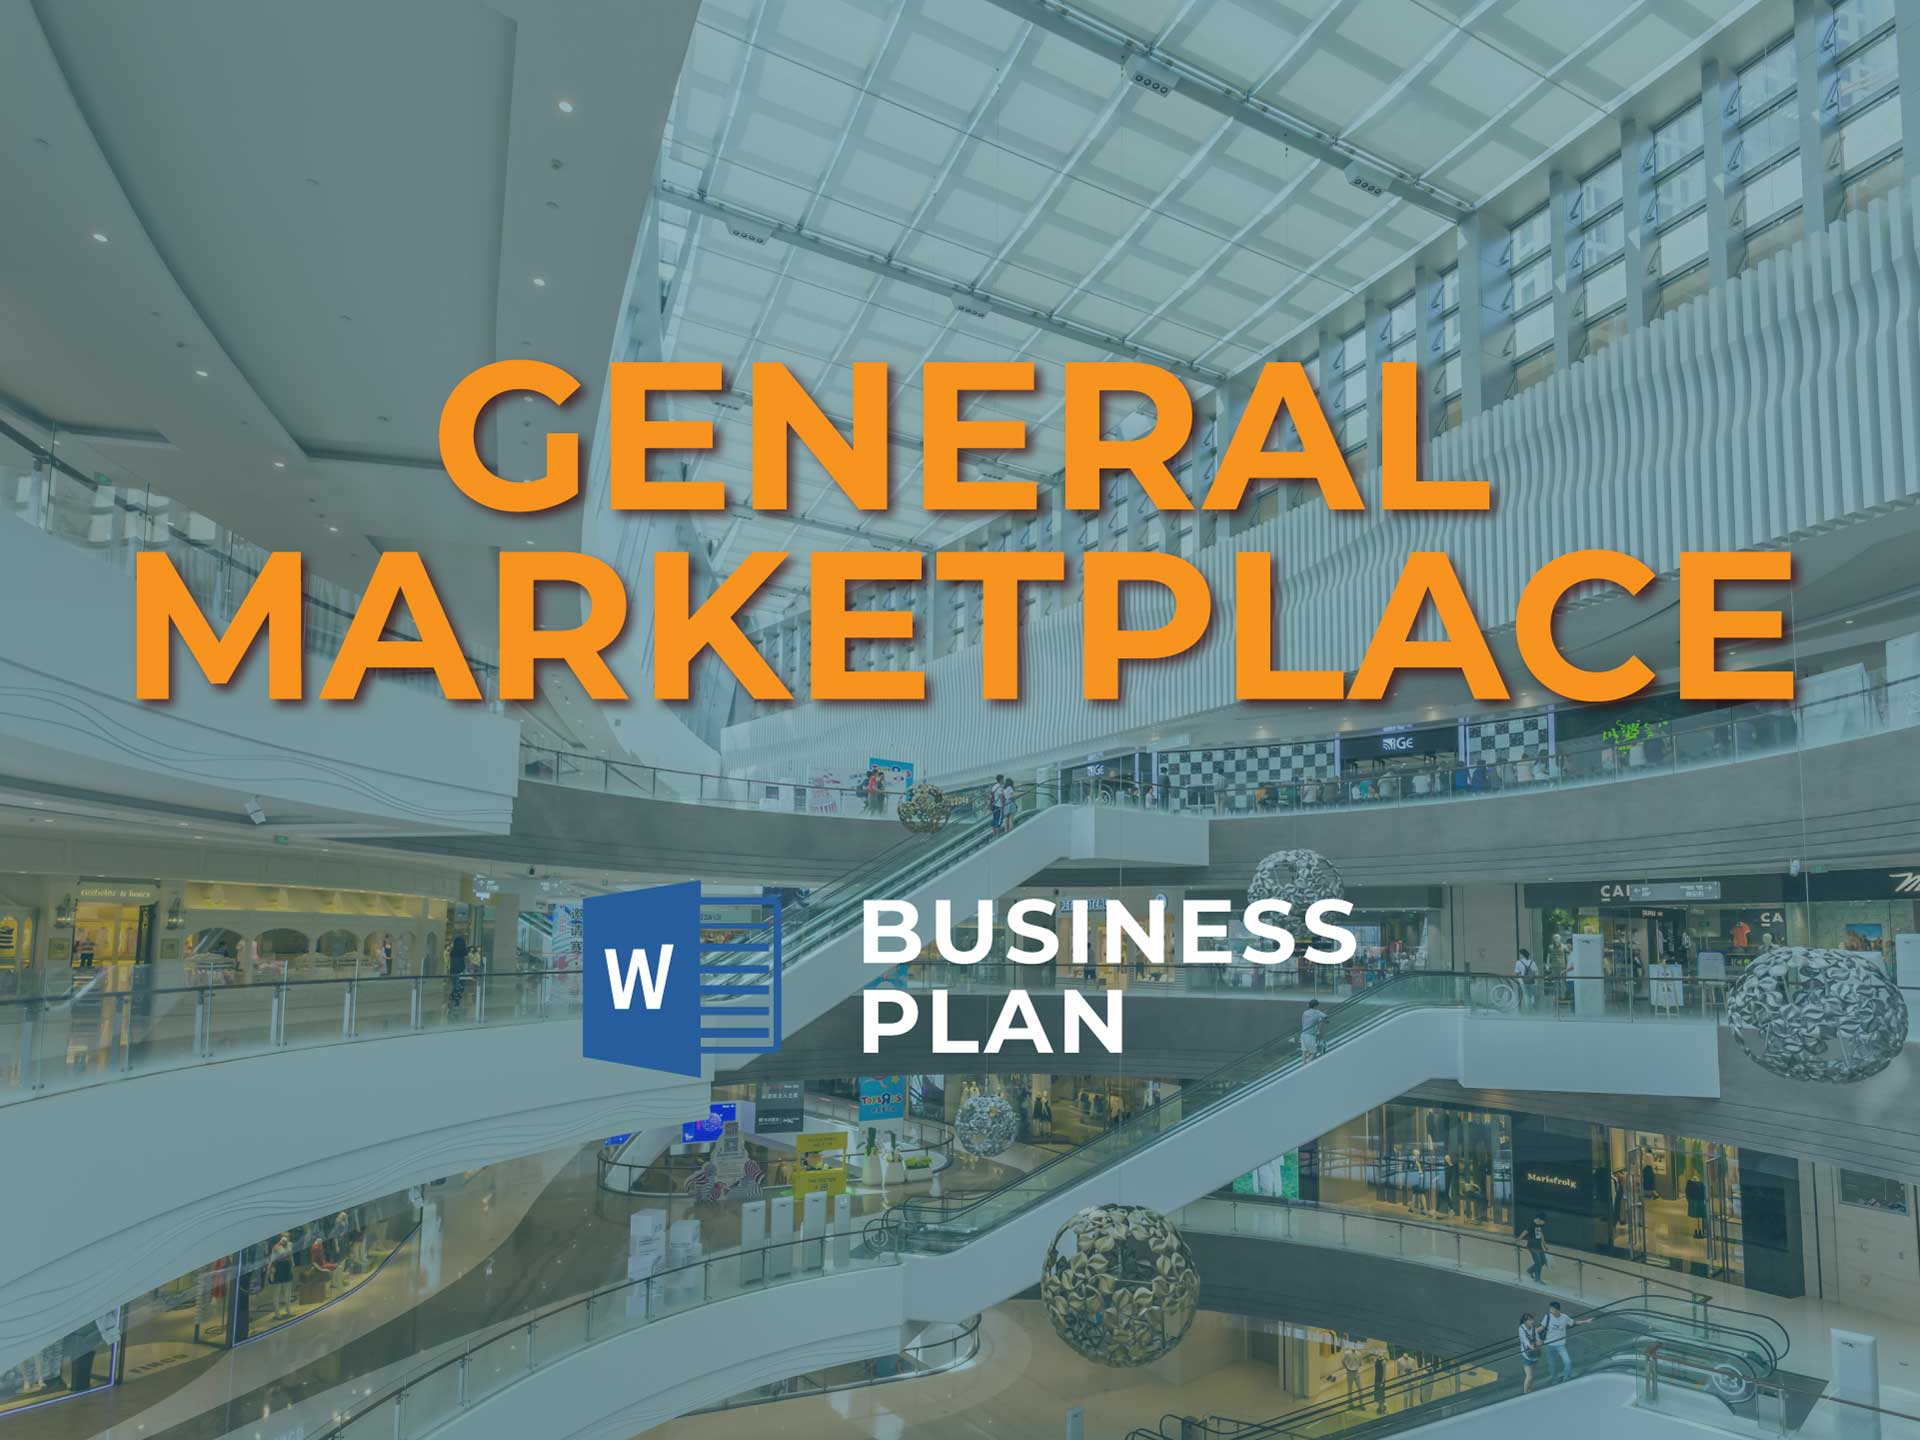 General Marketplace